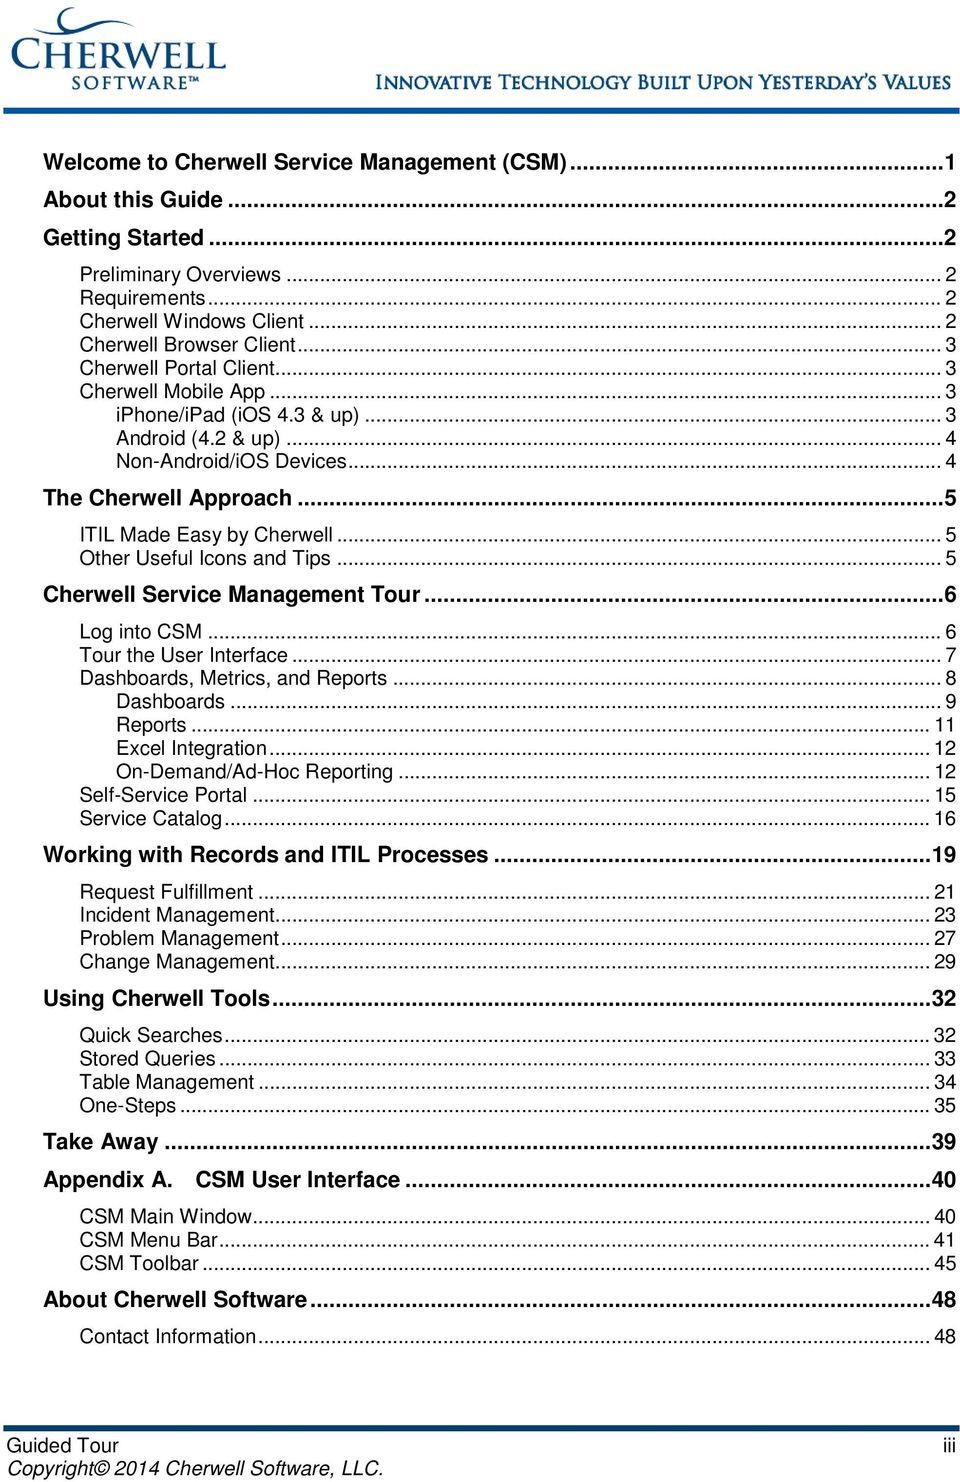 .. 5 Other Useful Icons and Tips... 5 Cherwell Service Management Tour... 6 Log into CSM... 6 Tour the User Interface... 7 Dashboards, Metrics, and Reports... 8 Dashboards... 9 Reports.